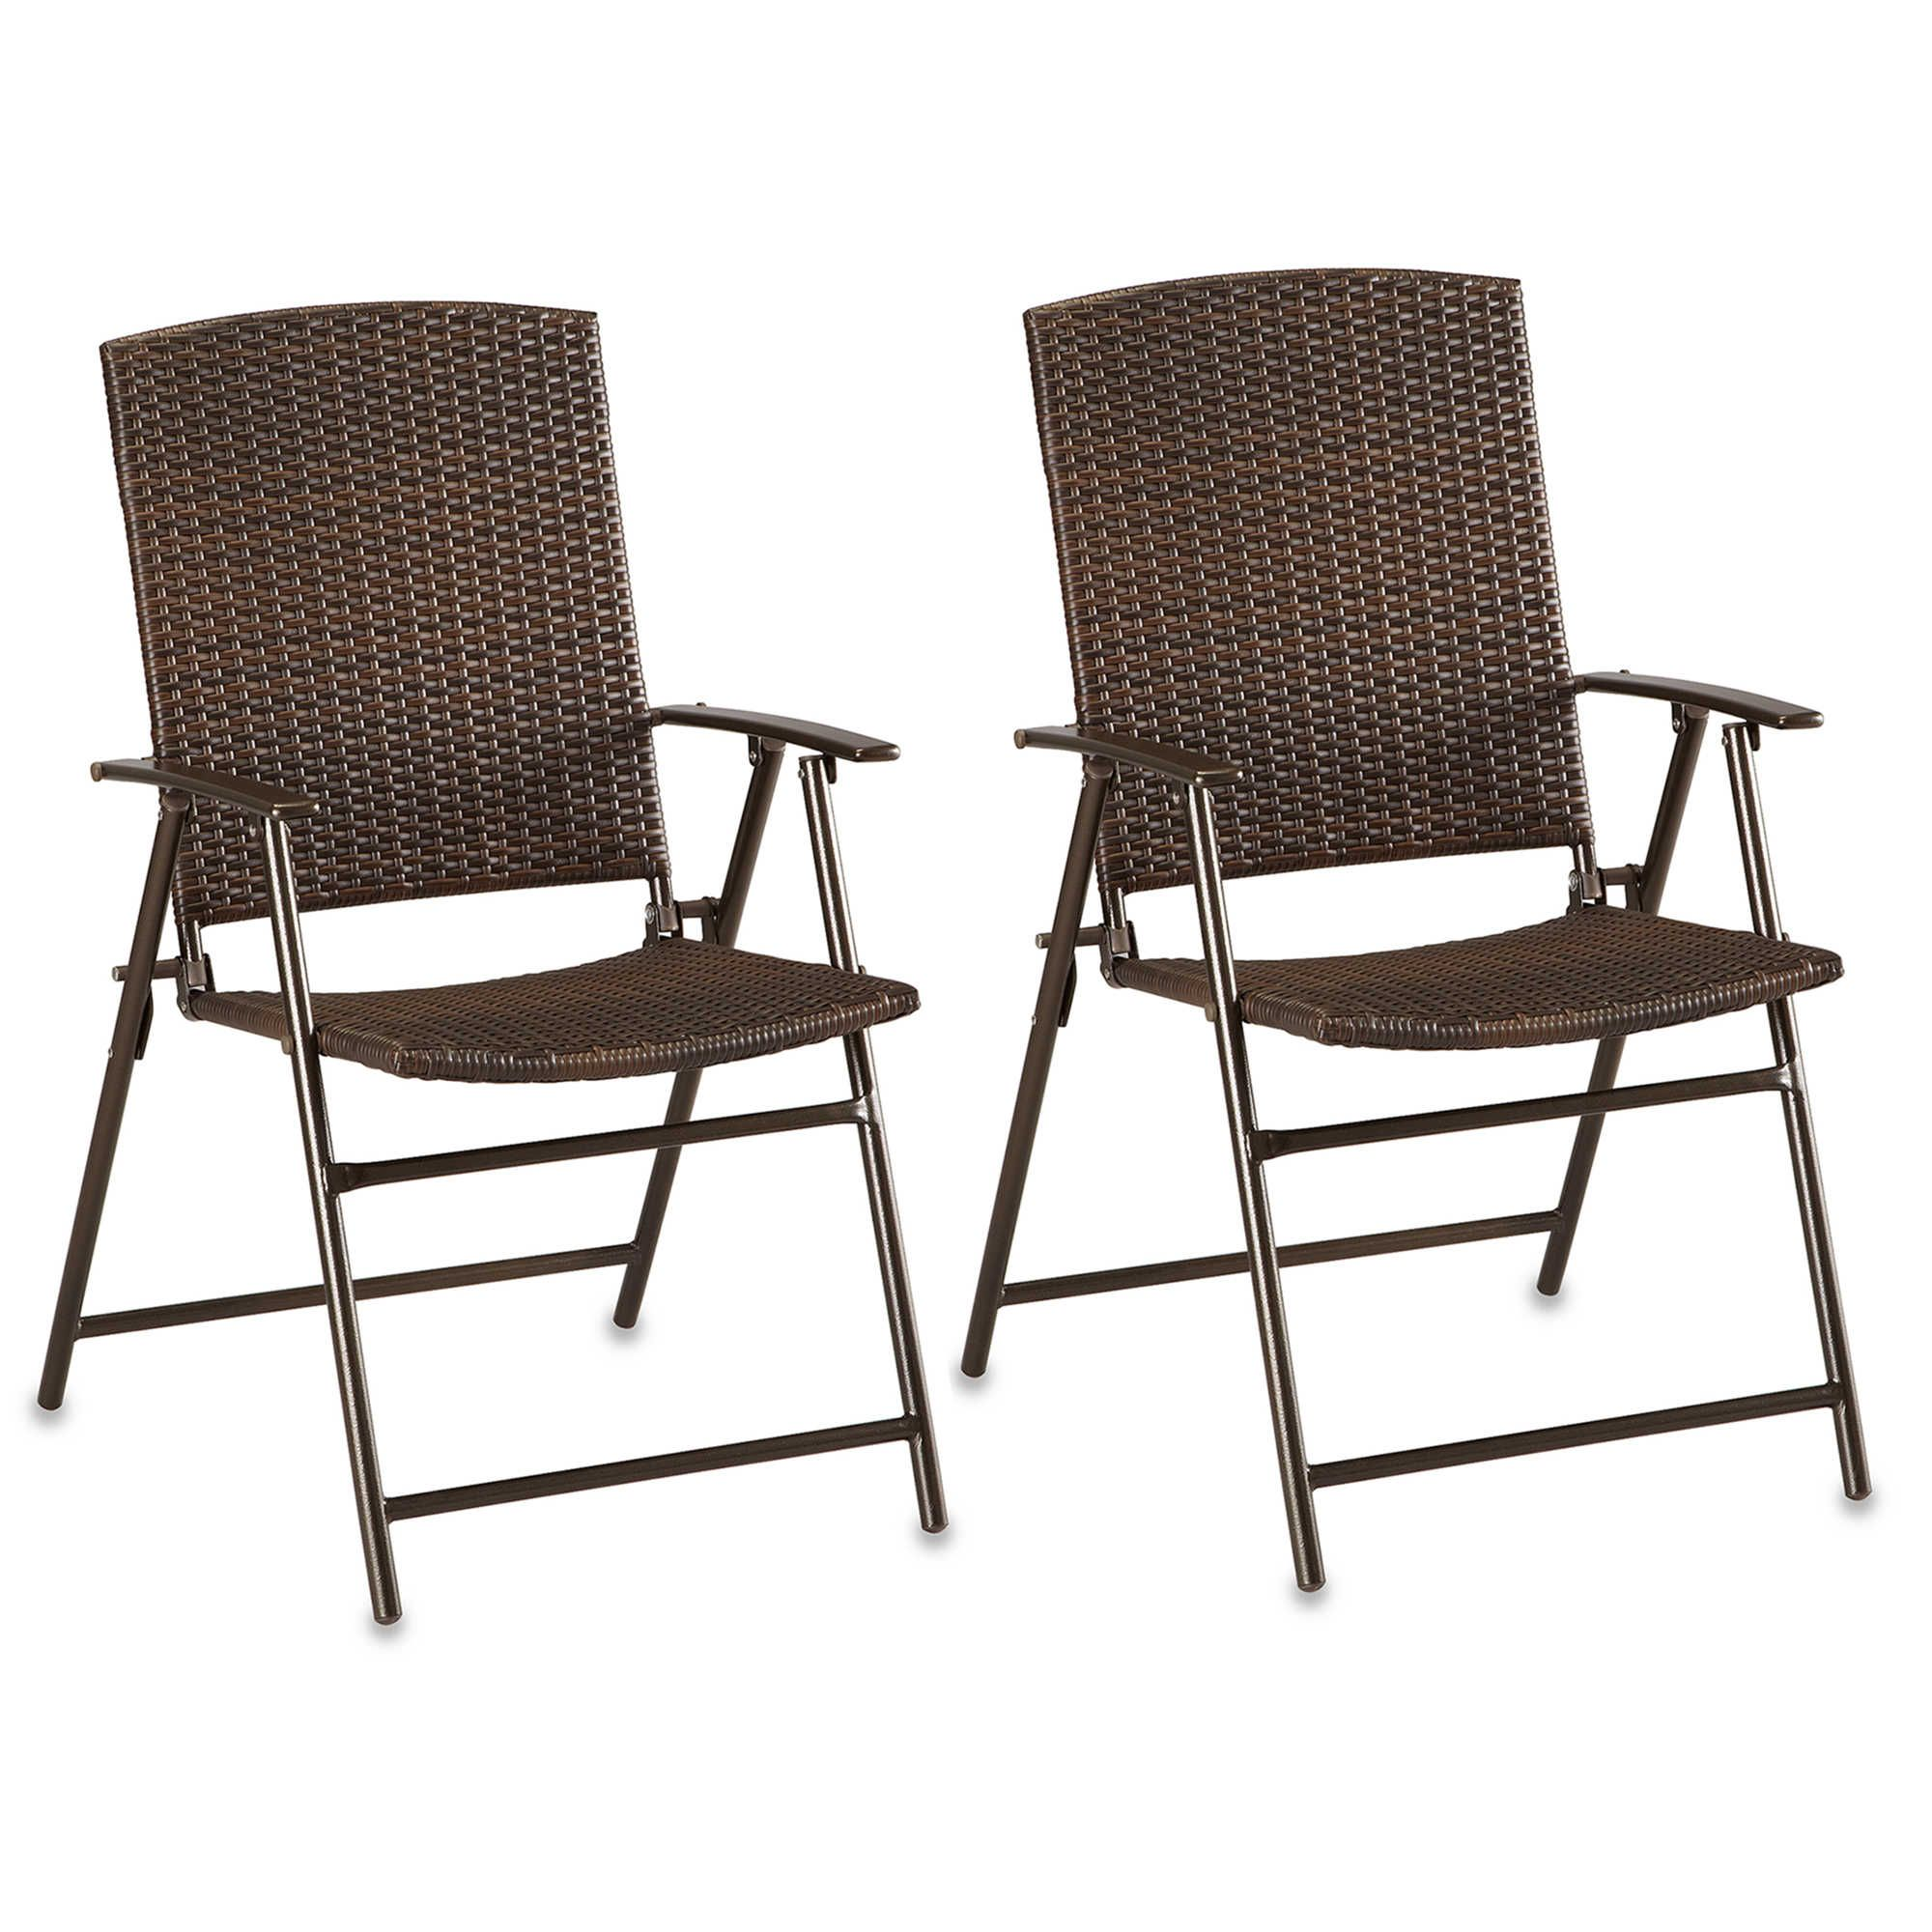 Barrington Wicker Bistro Folding Chairs In Brown Set Of 2 400 x 300